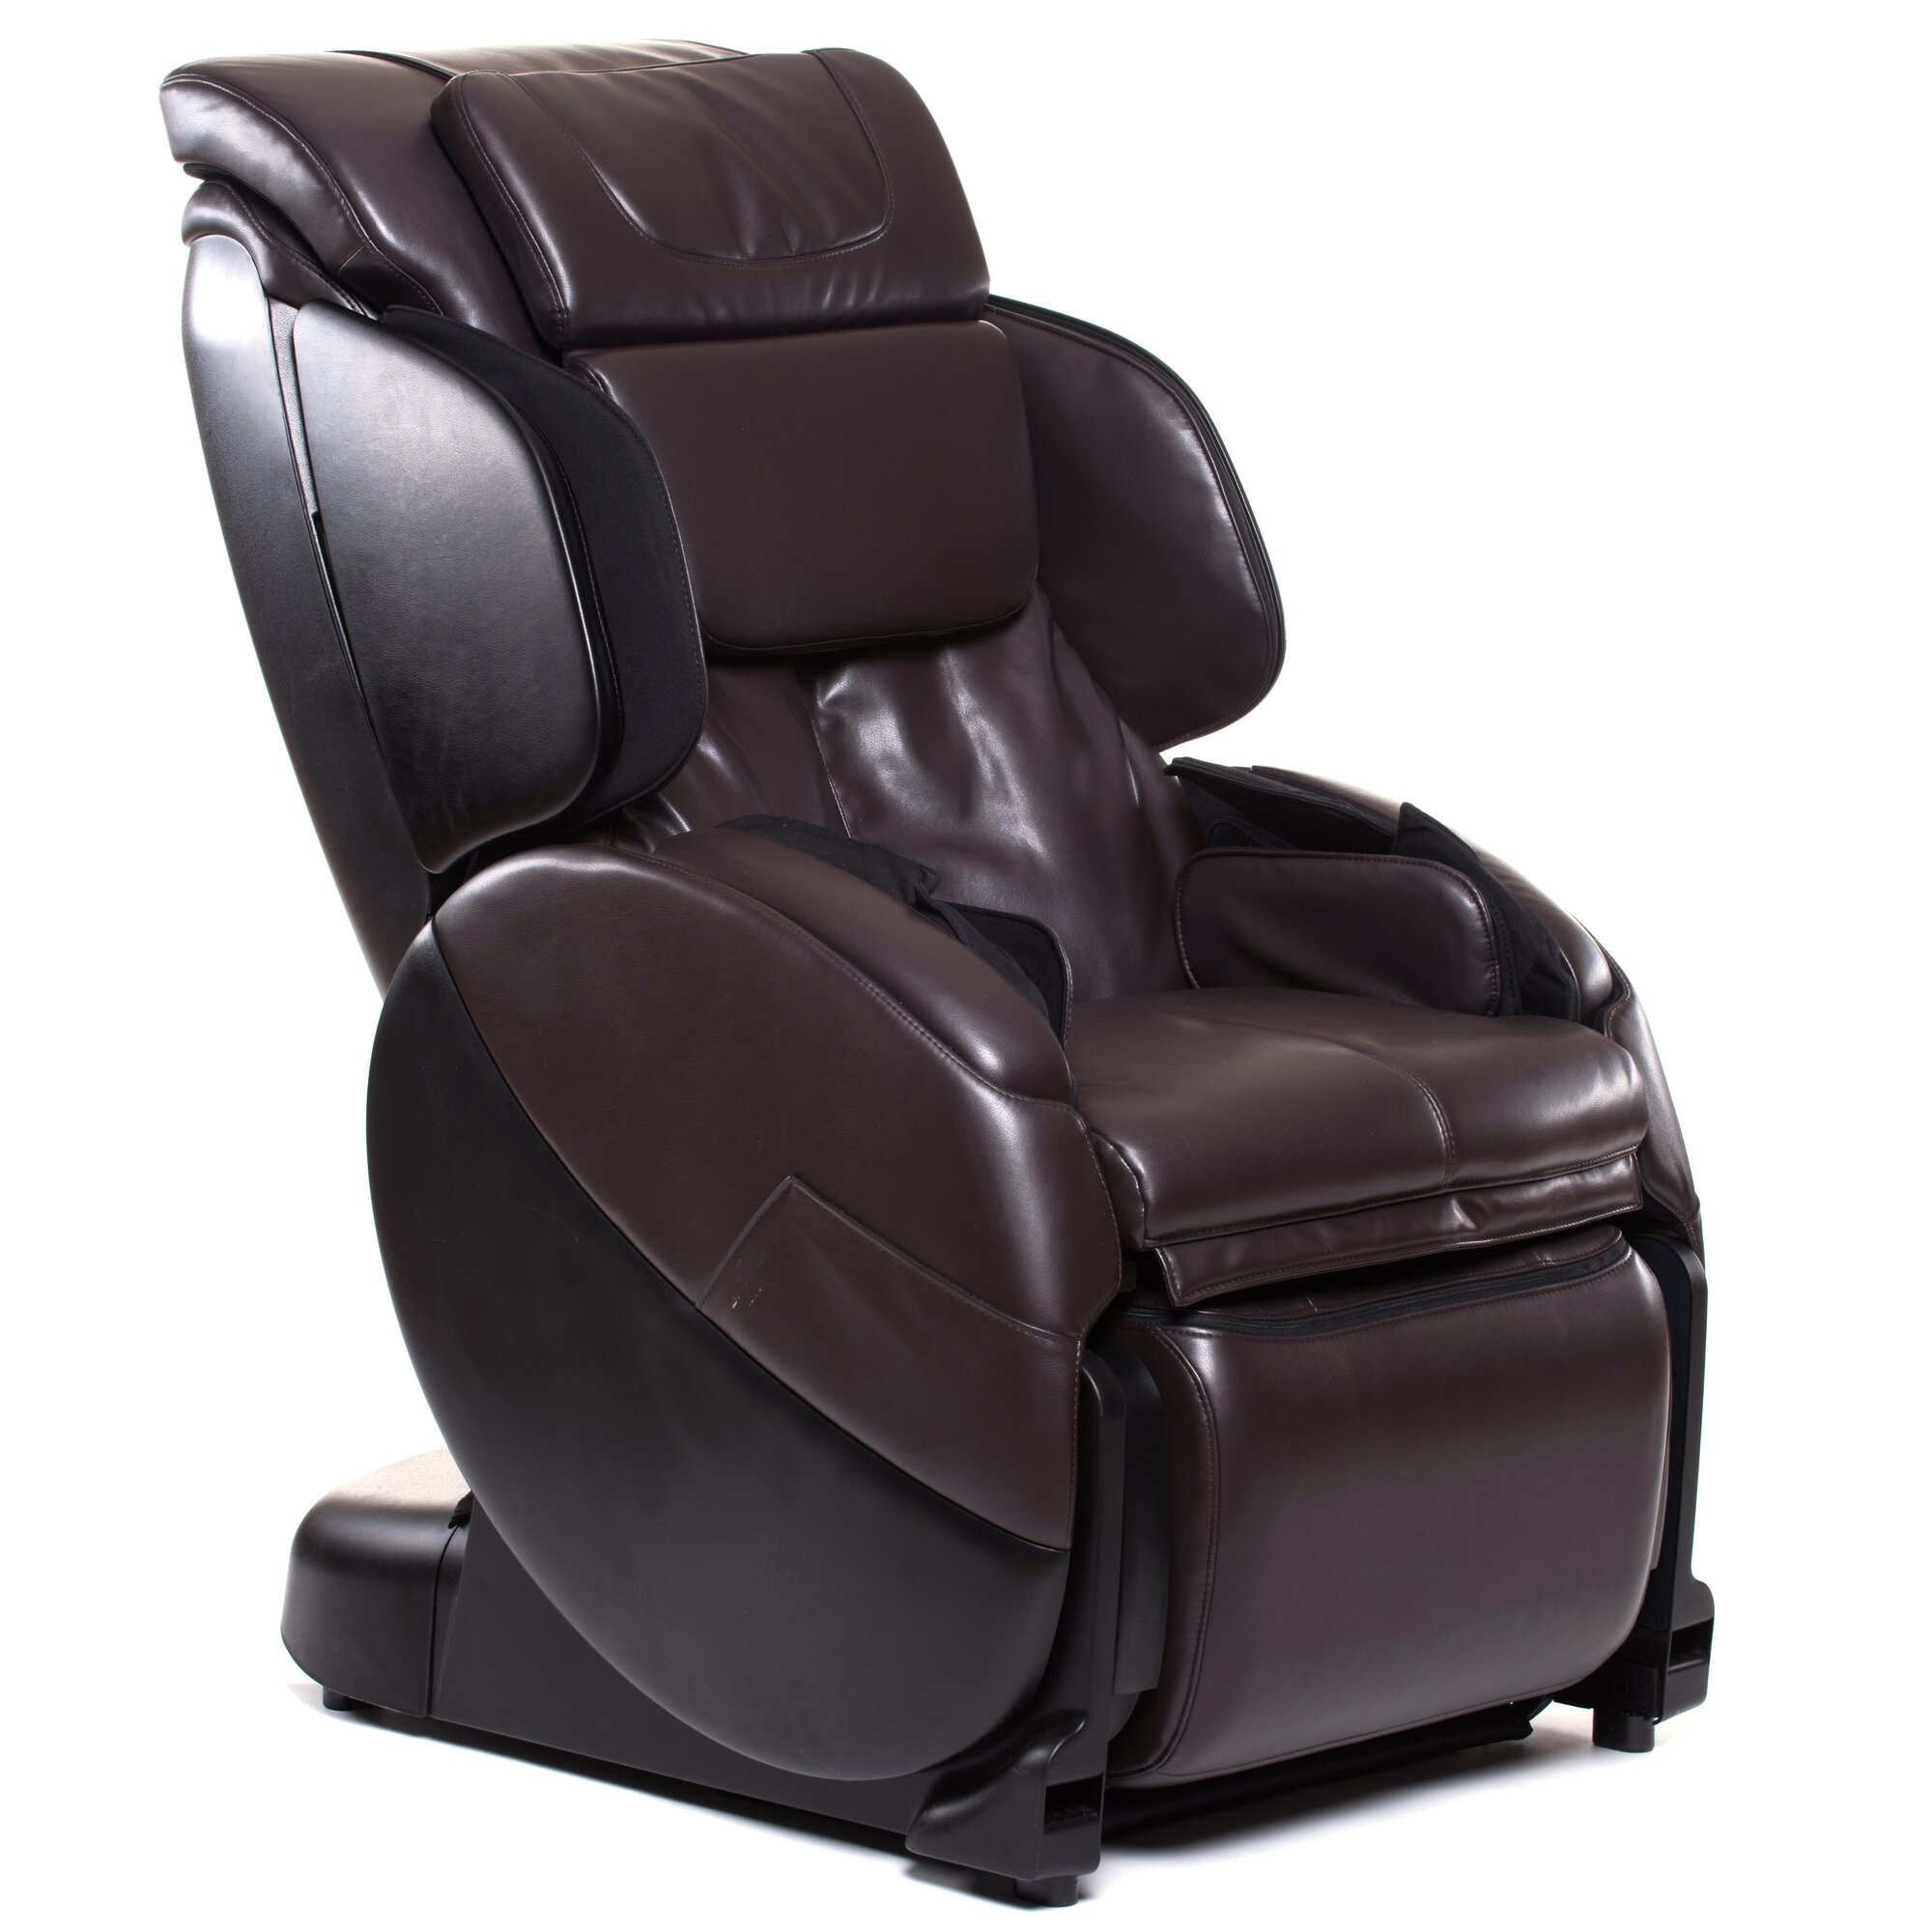 Massage Chair Ogawa Instachair